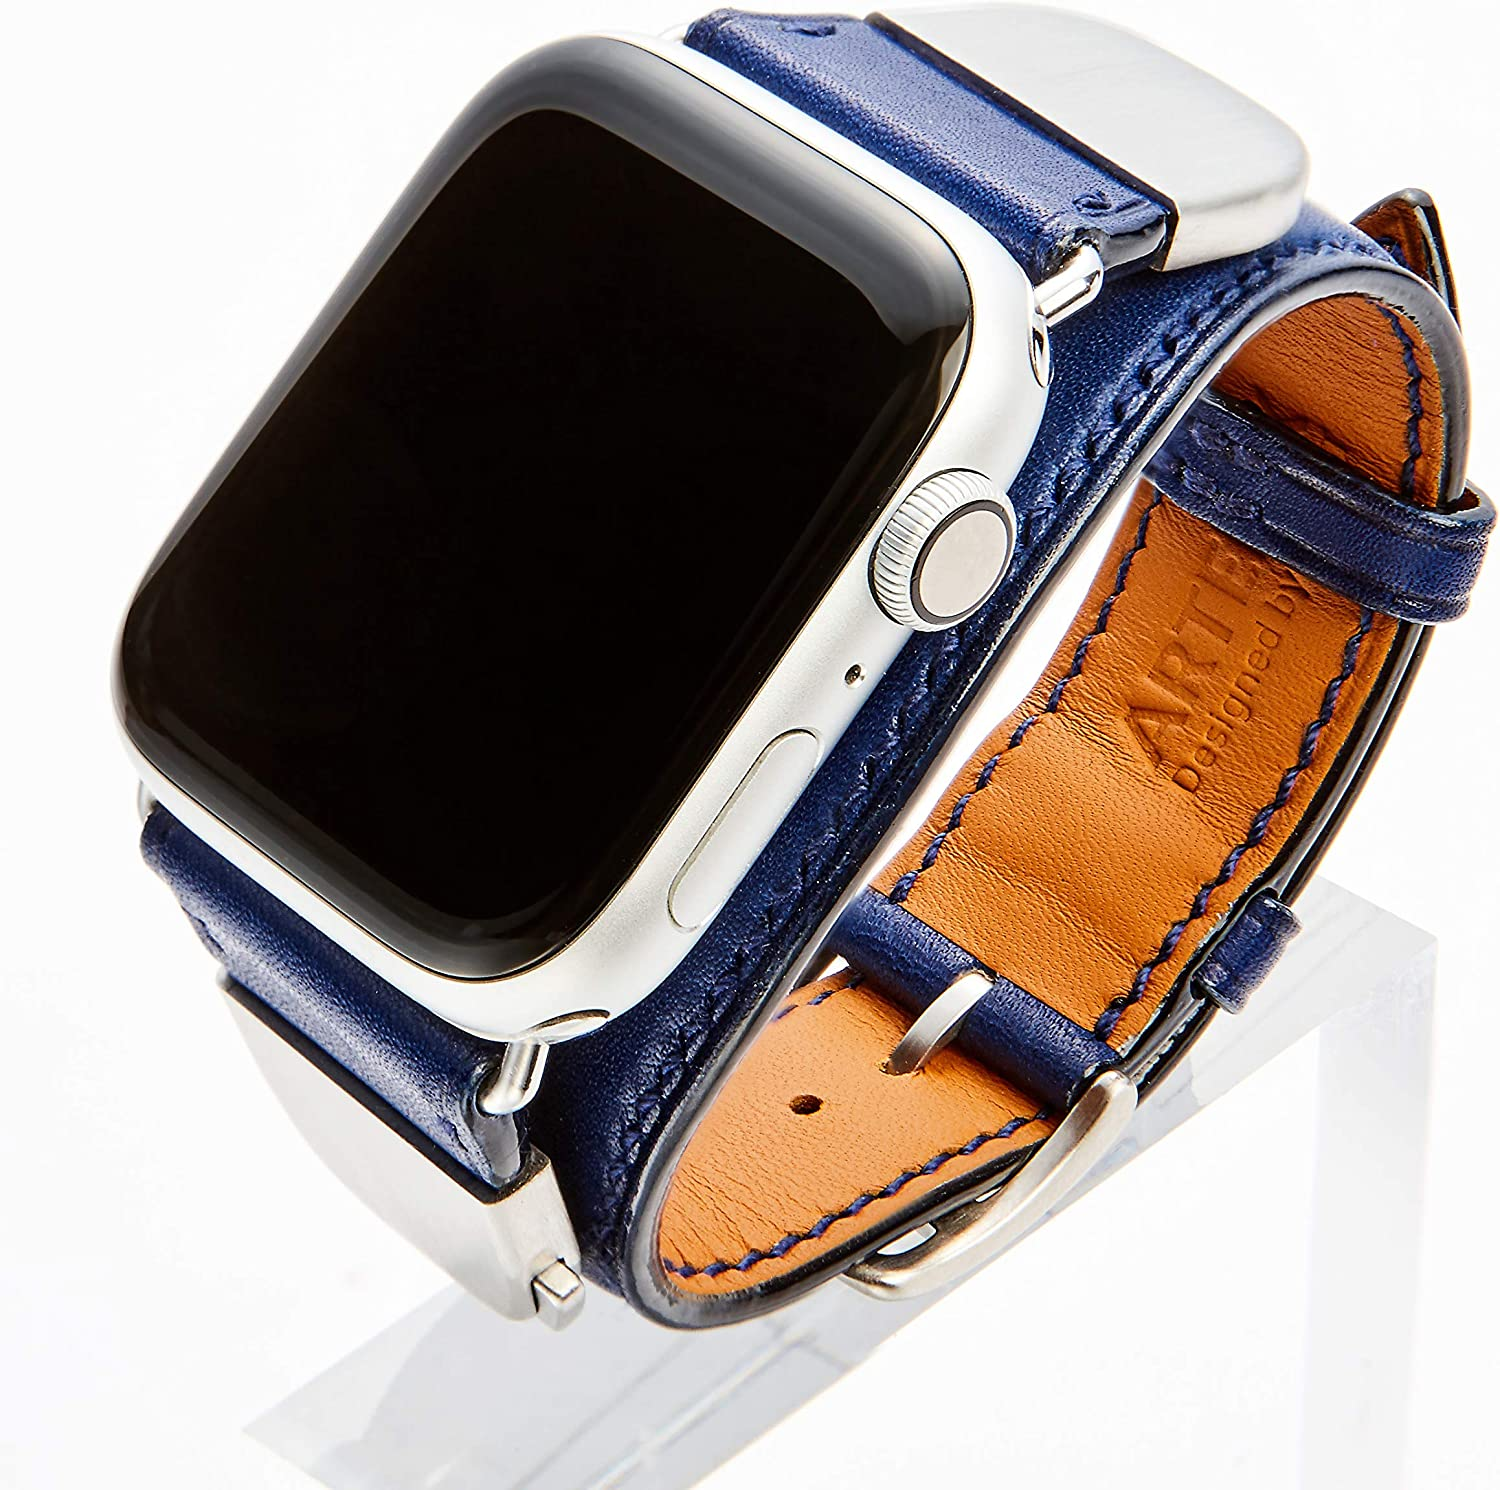 ARTENIX detachable leather smartwatch band compatible with Apple Watch 44mm iWatch strap for series 1 2 3 4 5 (Elec Ocean Blue)